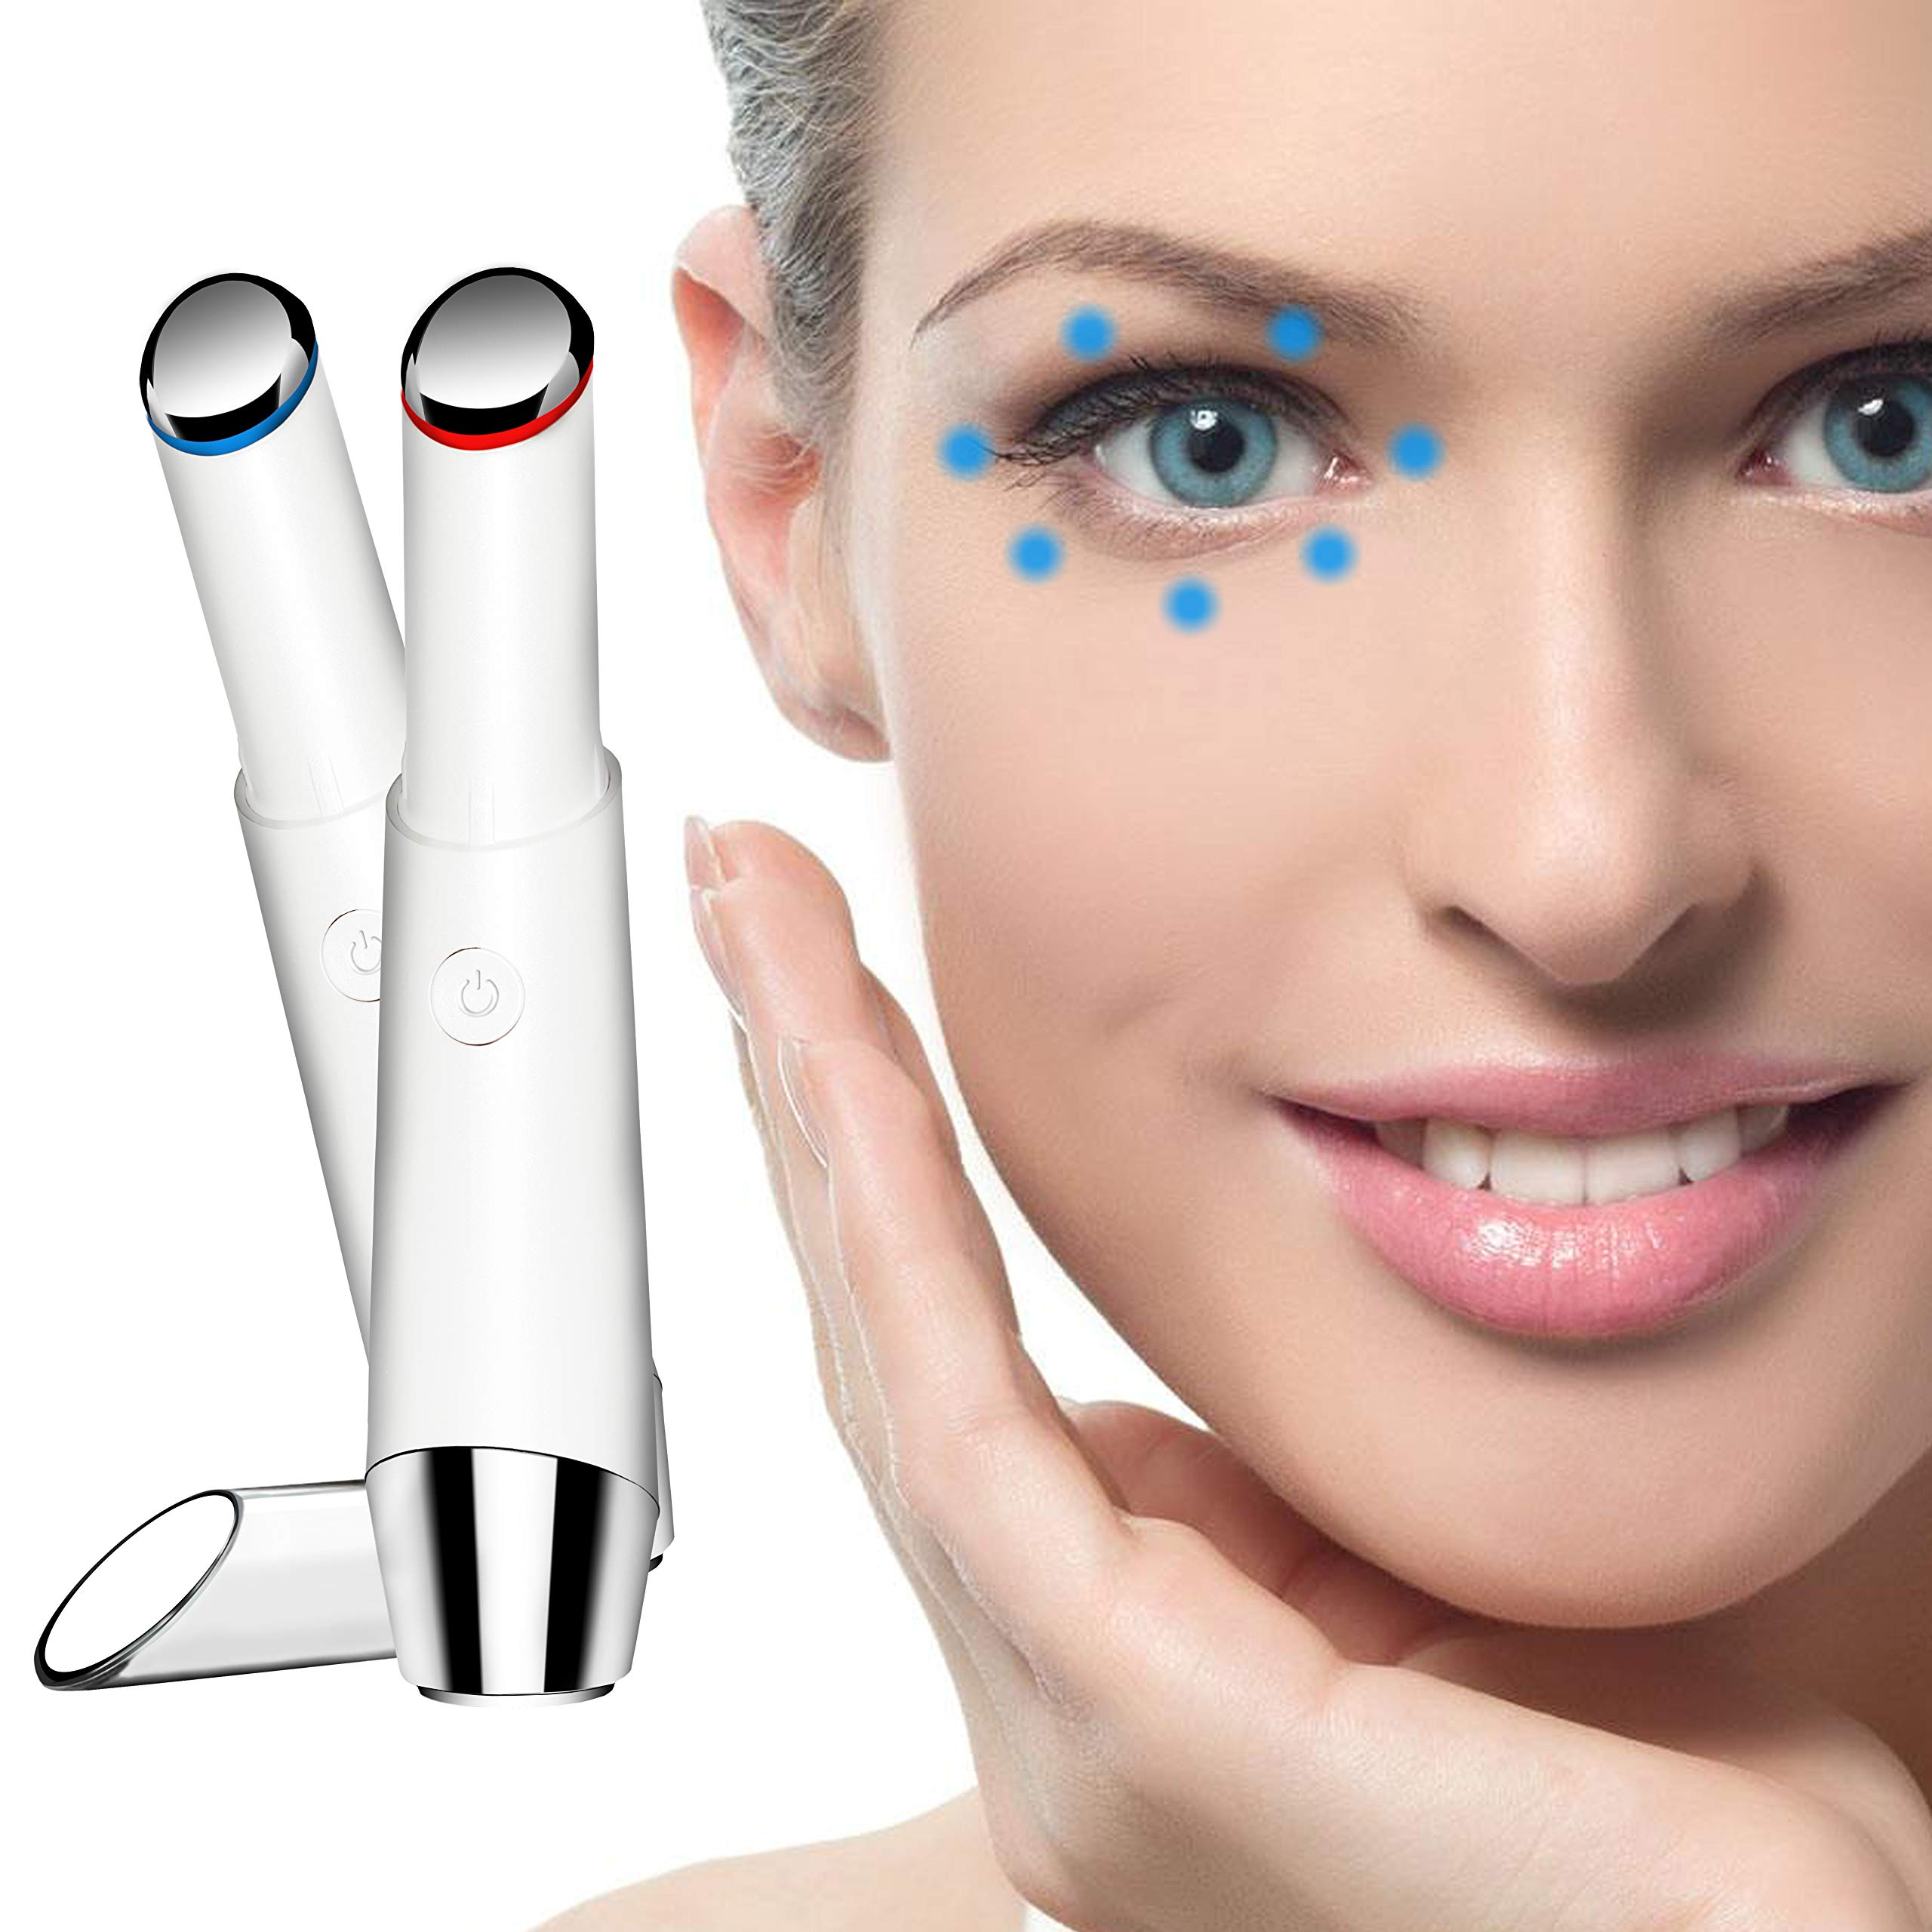 Eye Massager, SODPE facial massager with 42℃ Heat & Sonic Vibration for Dark Circles, Puffiness and Eye Fatigue, Anti-wrinkle, Two Modes, USB Rechargeable eye roller anti aging skin products by SODPE